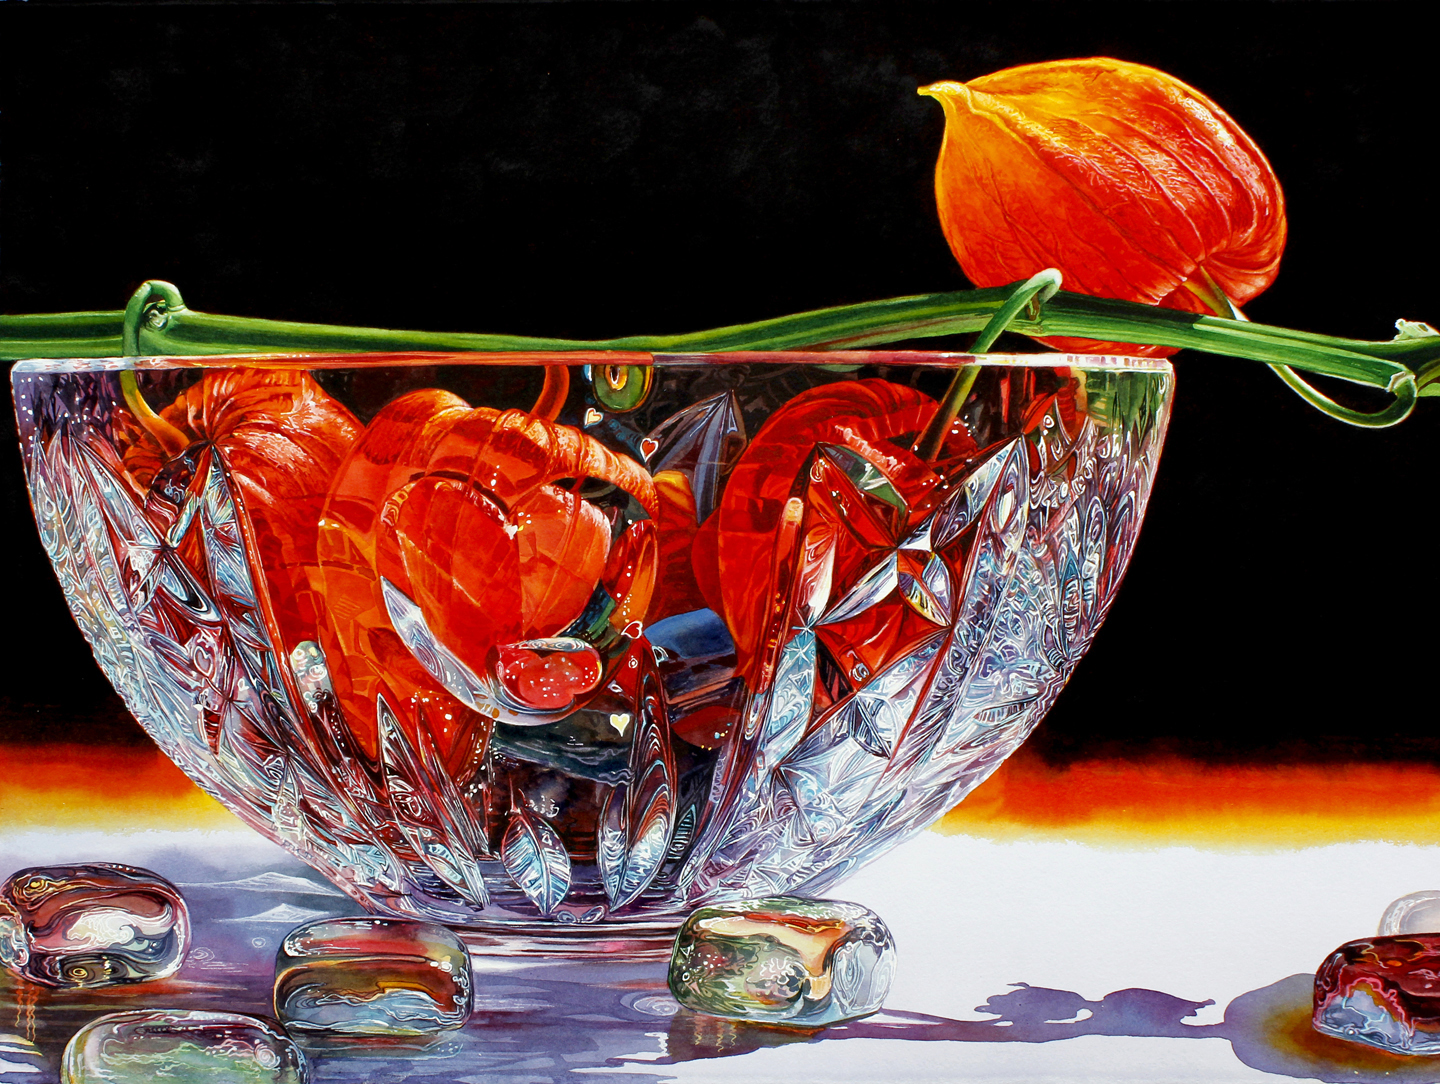 Contemporary realism watercolor painting